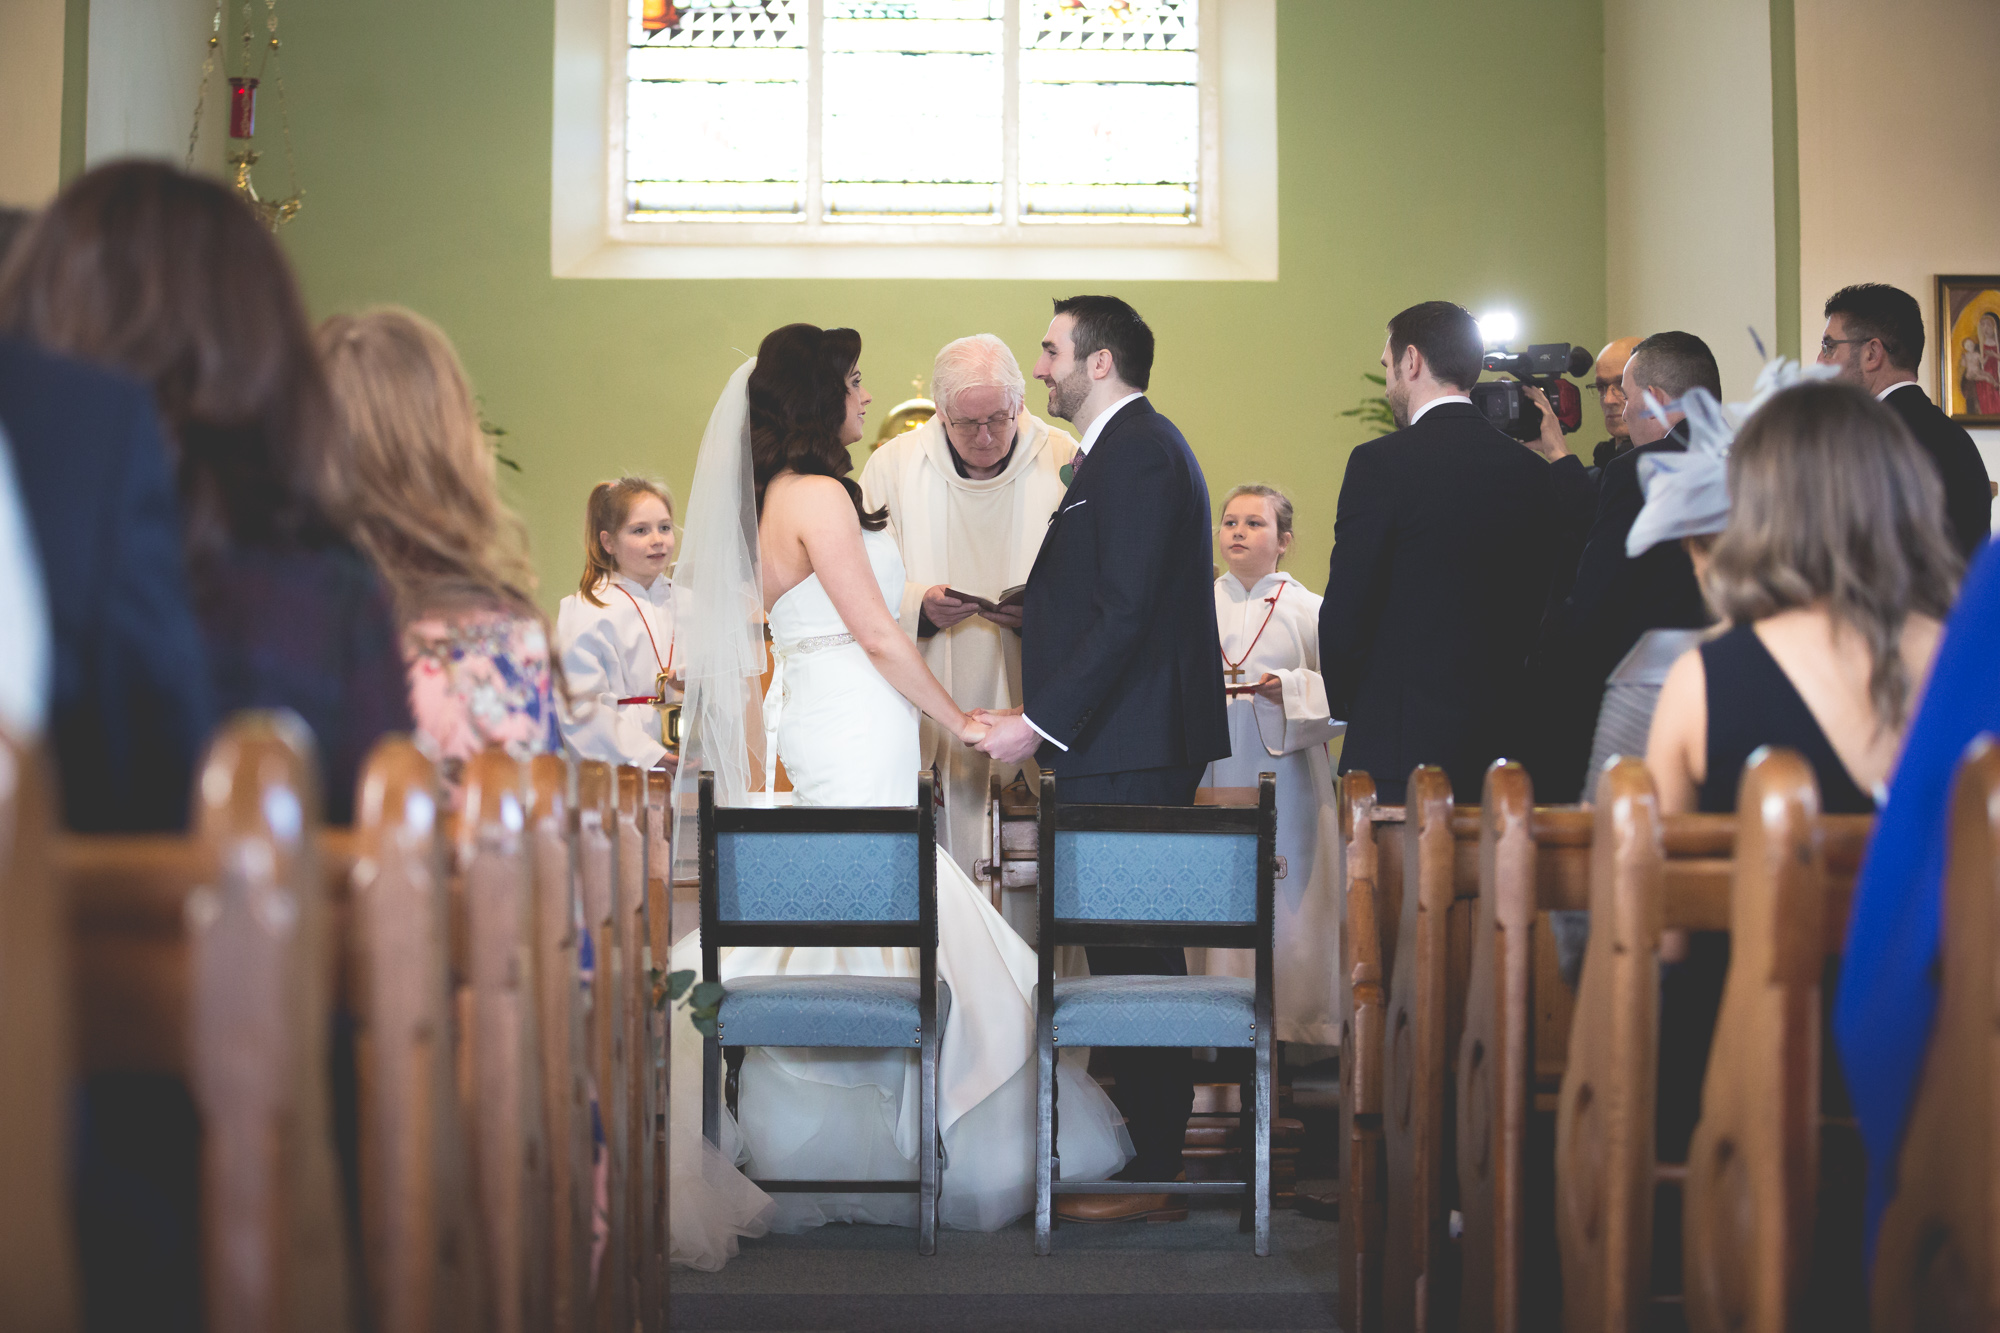 Francis&Oonagh-Ceremony-66.jpg